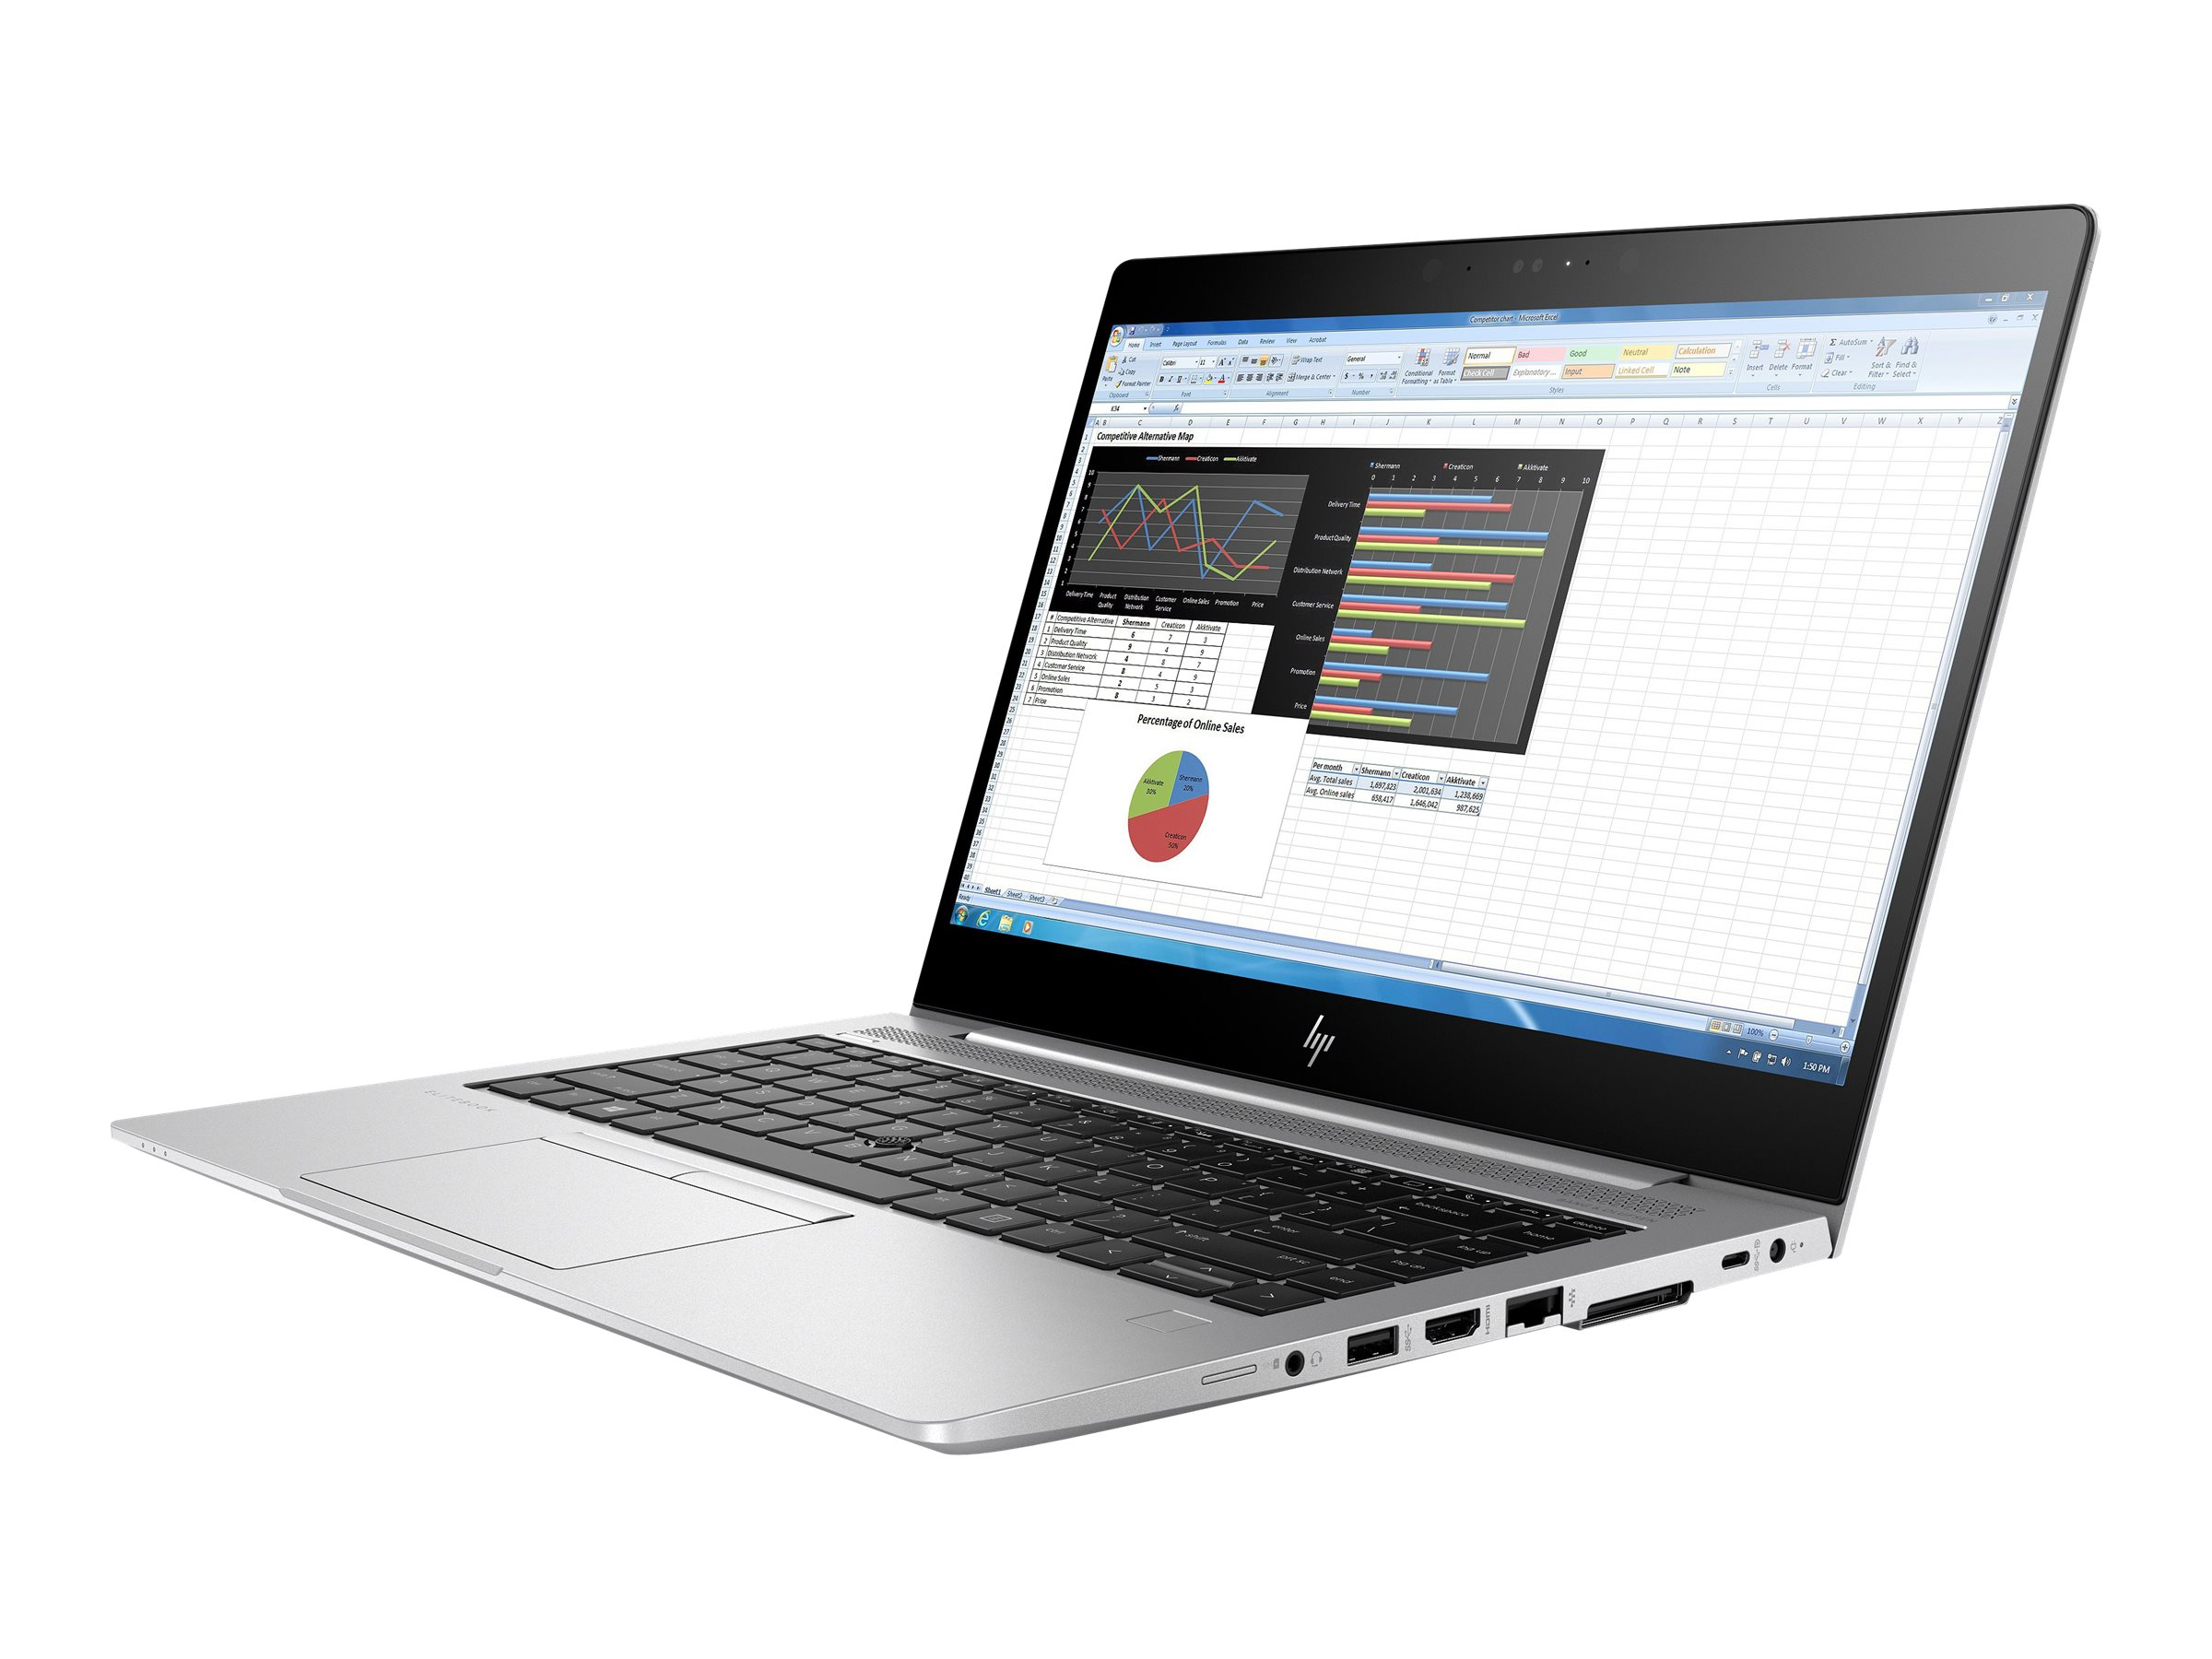 Hp mobile thin client mt44 ryzen 3 pro 2300u 2 ghz win 10 iot enterprise for thin clients 8 gb ram 128 gb ssd tlc 35 6 cm 14 ips 1920 x 1080 full hd 11033746 3jh10ea abd